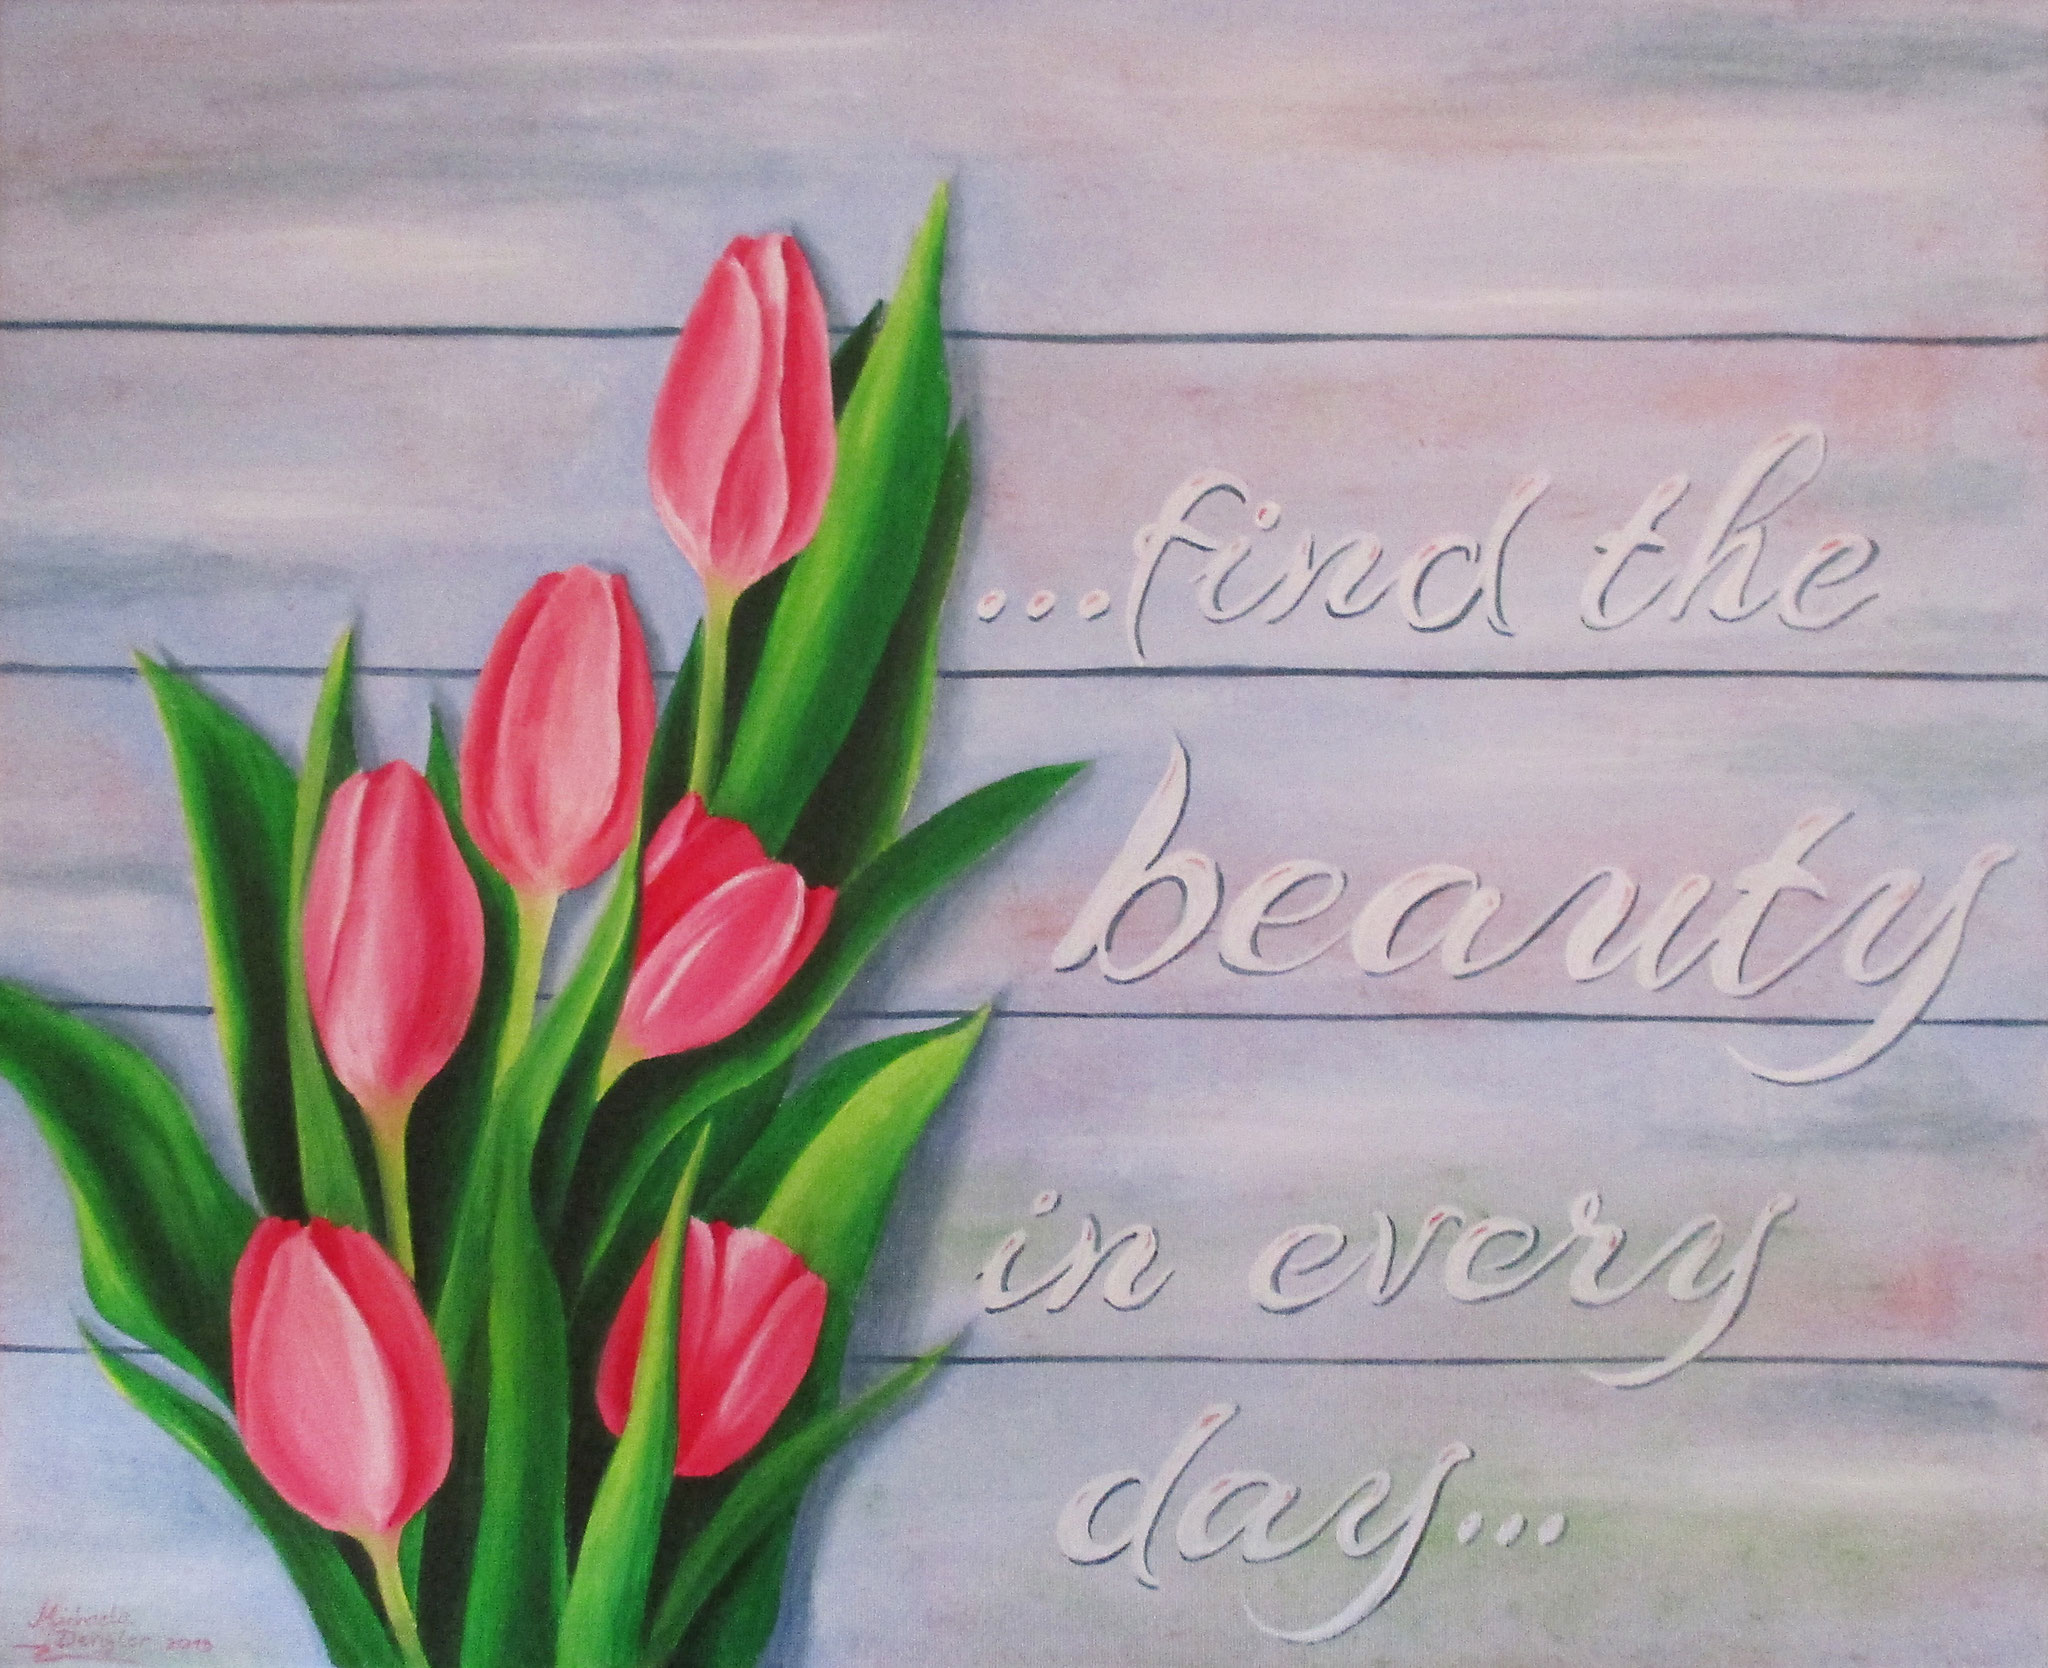 Tulpen - the beauty in every day